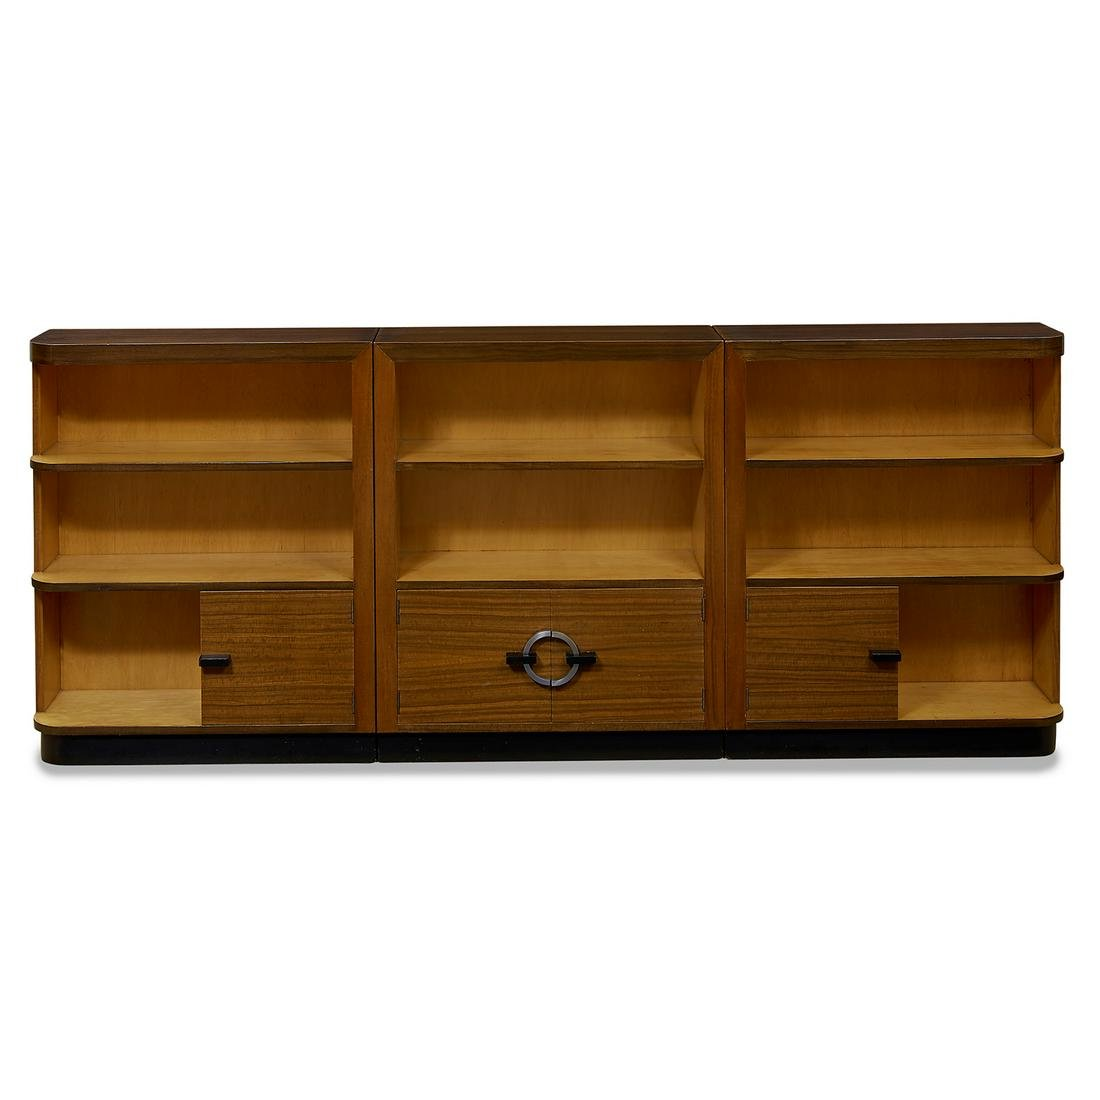 Gilbert Rohde for Herman Miller bookcases, three